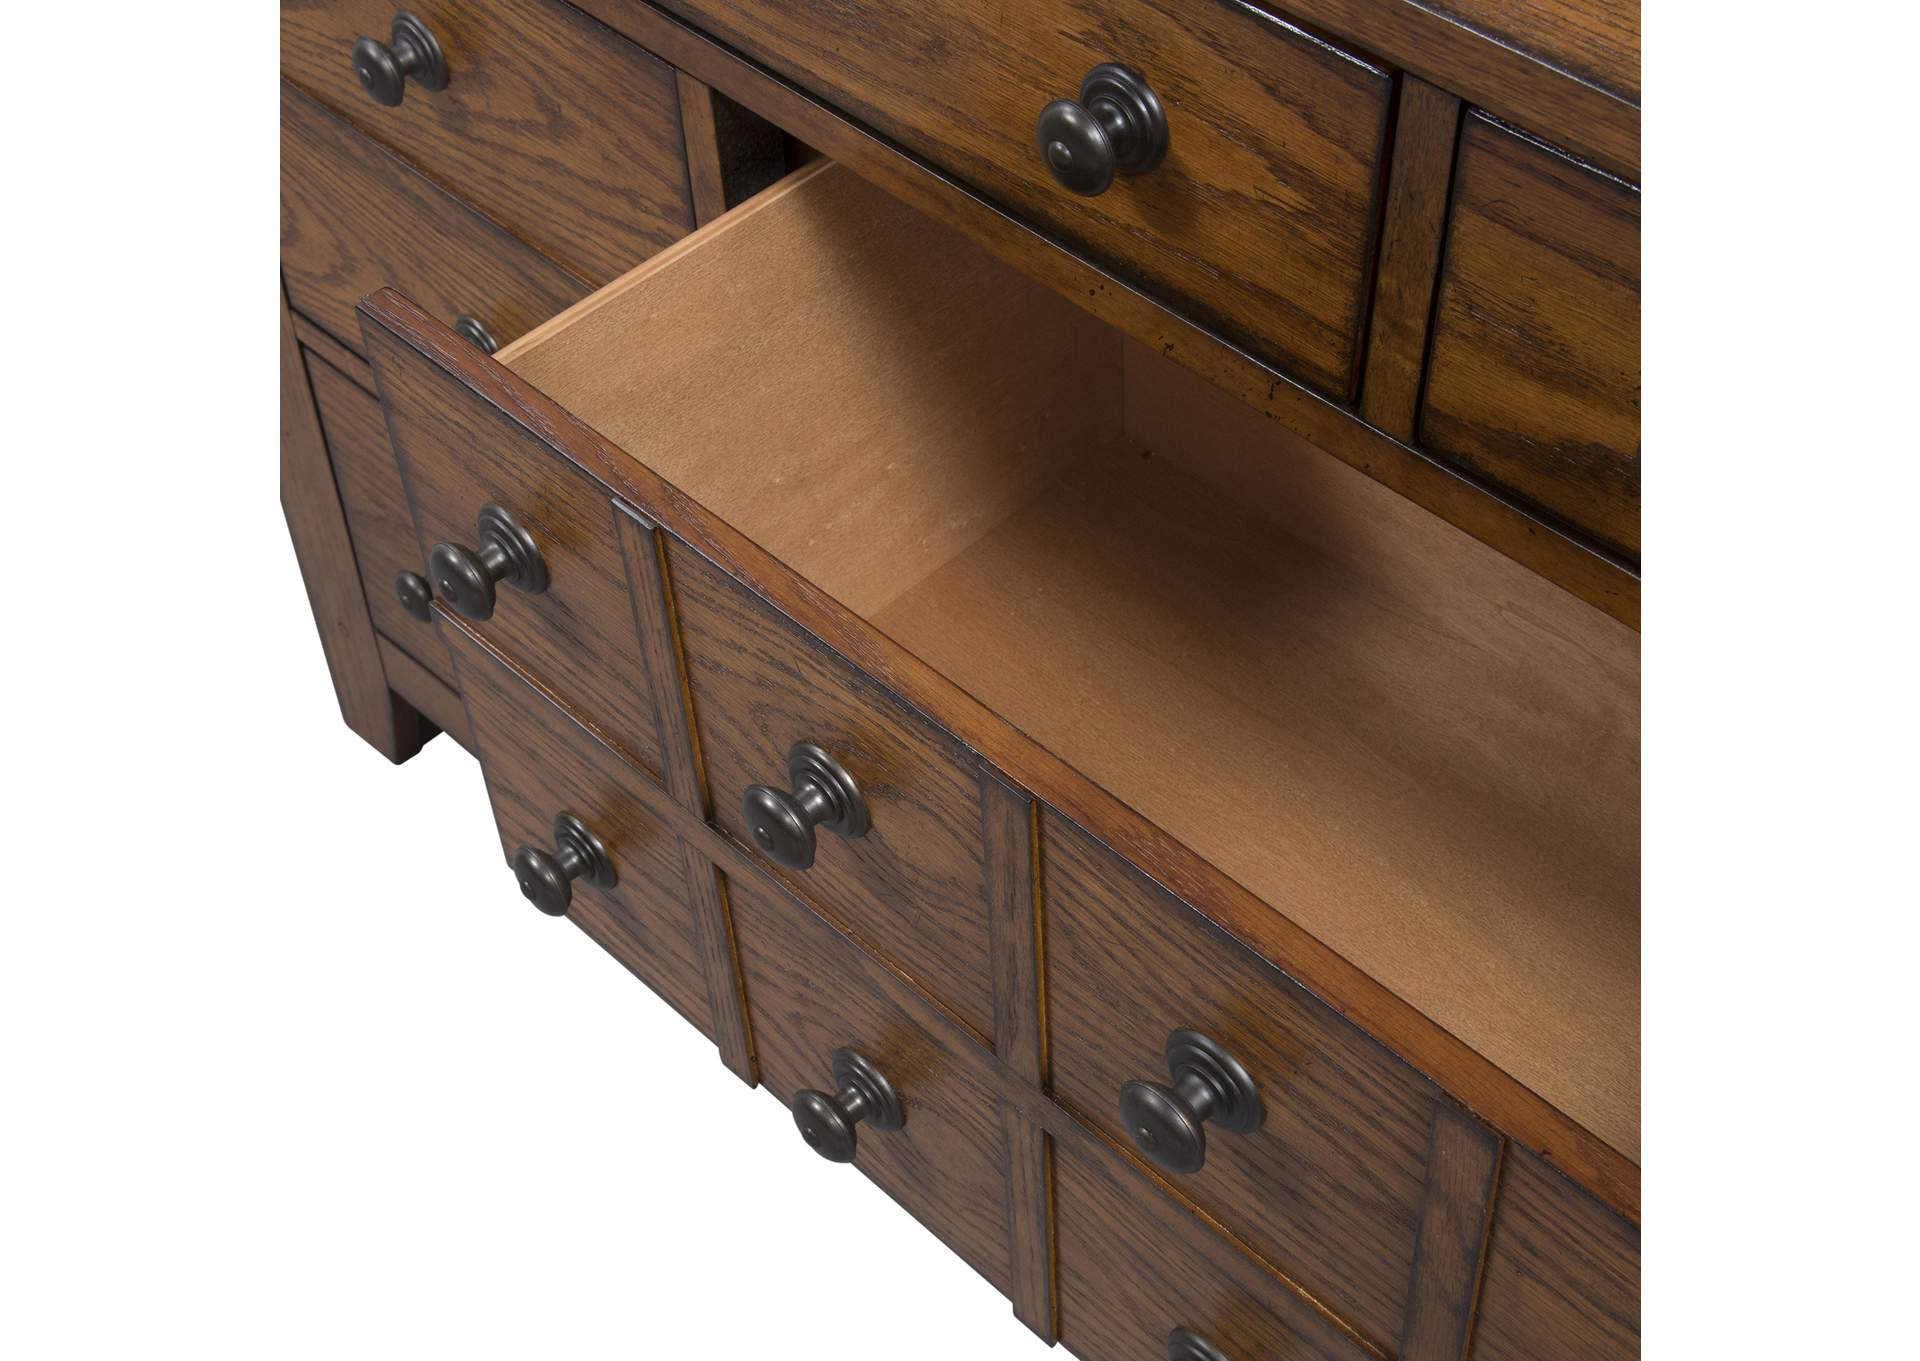 Grandpas Cabin Aged Oak 7 Drawer Dresser,Liberty